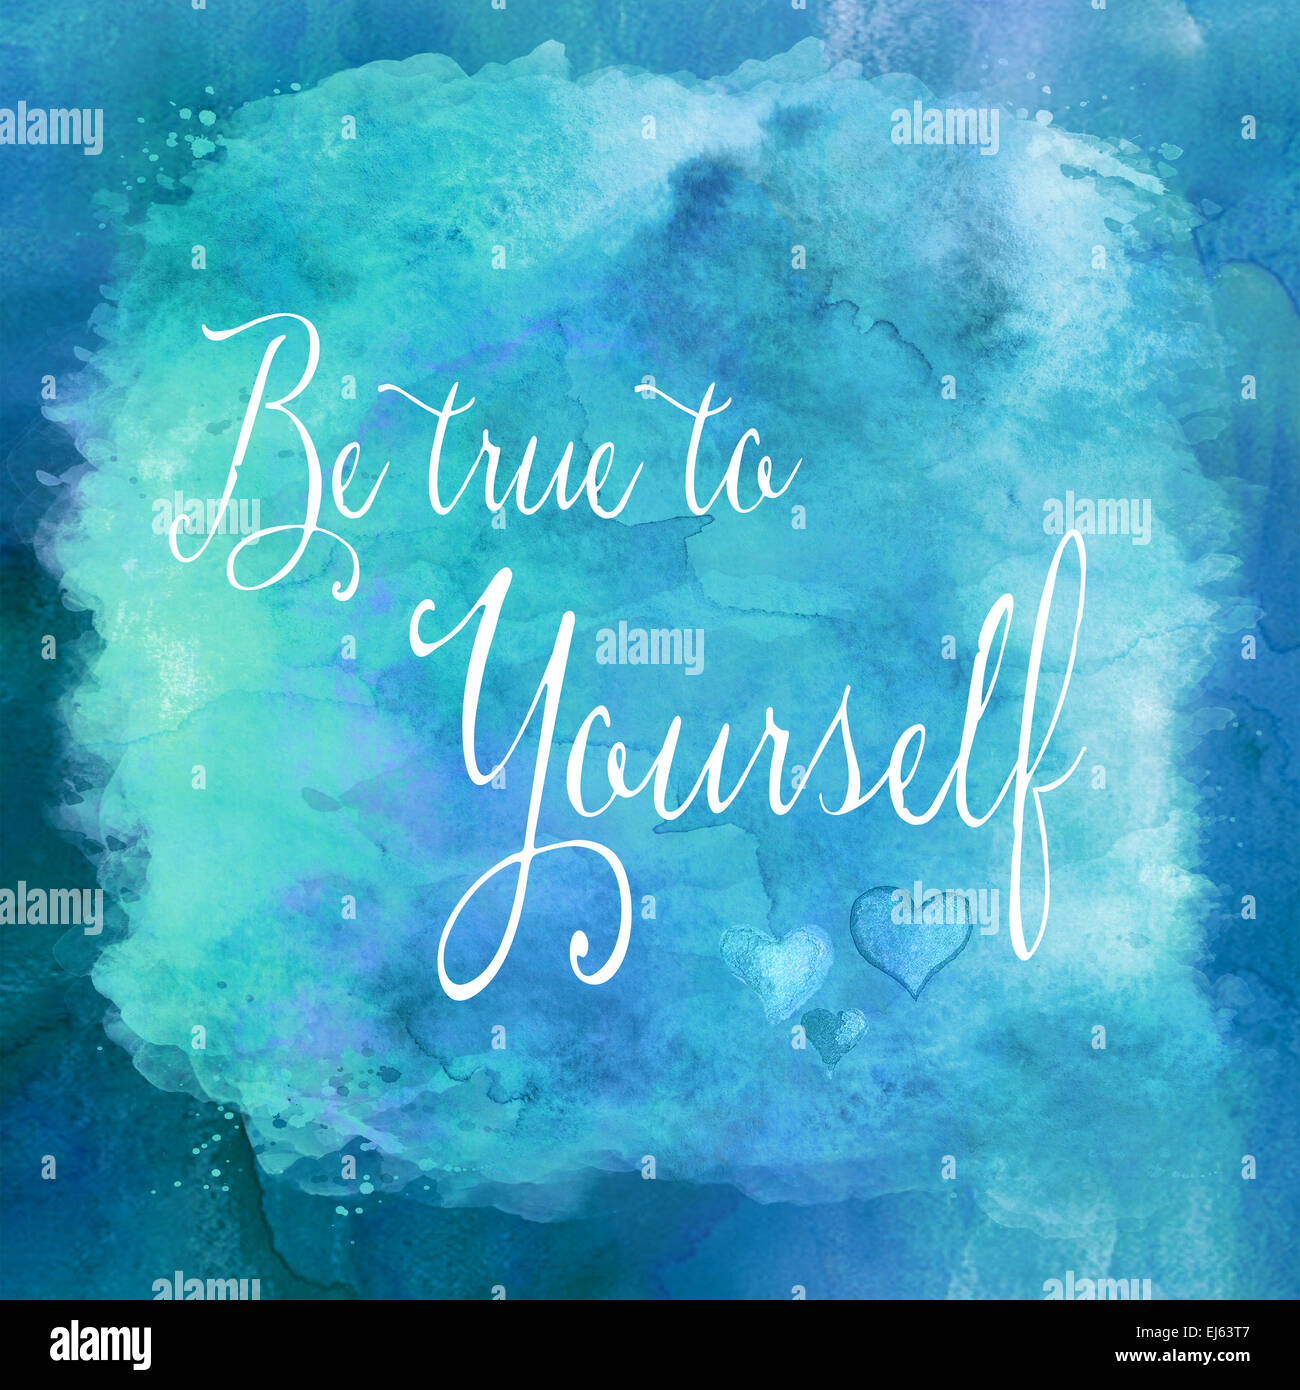 Be True To Yourself Watercolor Motivational Quote Wall Art Stock